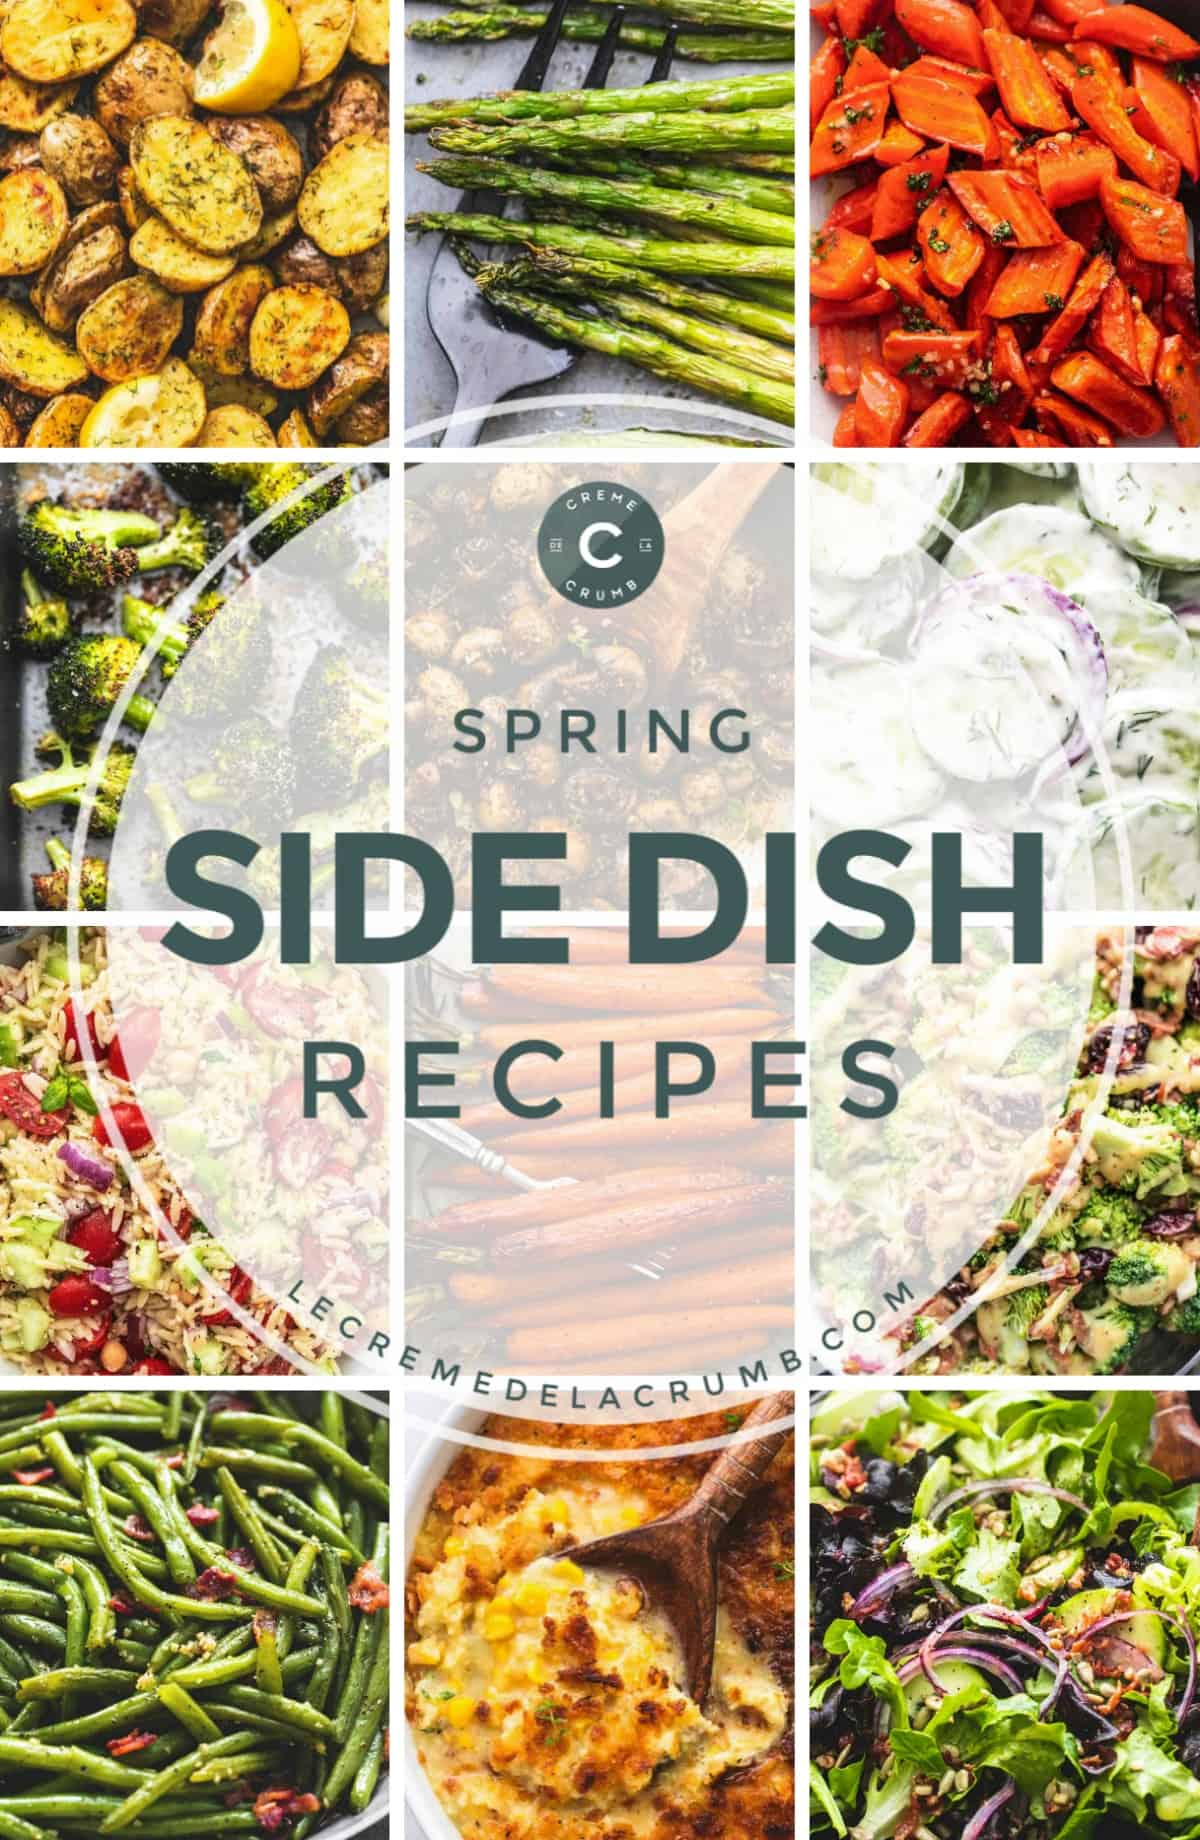 12 pictures in a collage - spring side dish recipes